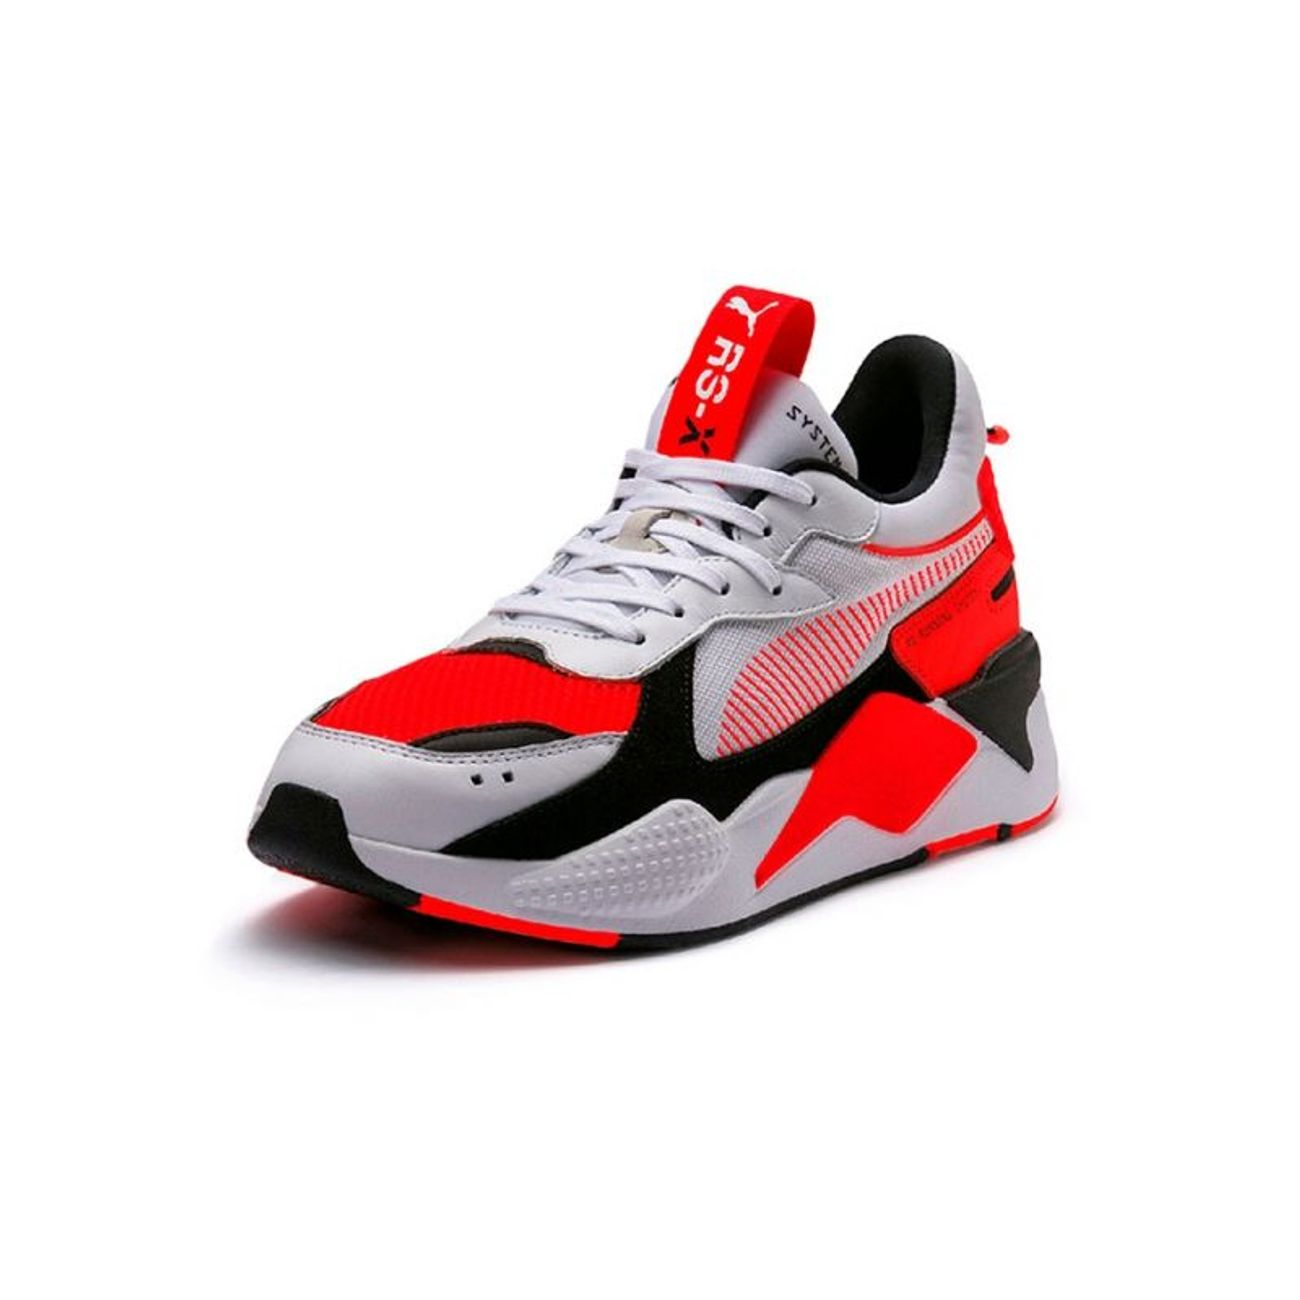 Adulte Reinvention Padel x 02 Puma 369579 Rs vNmOynw80